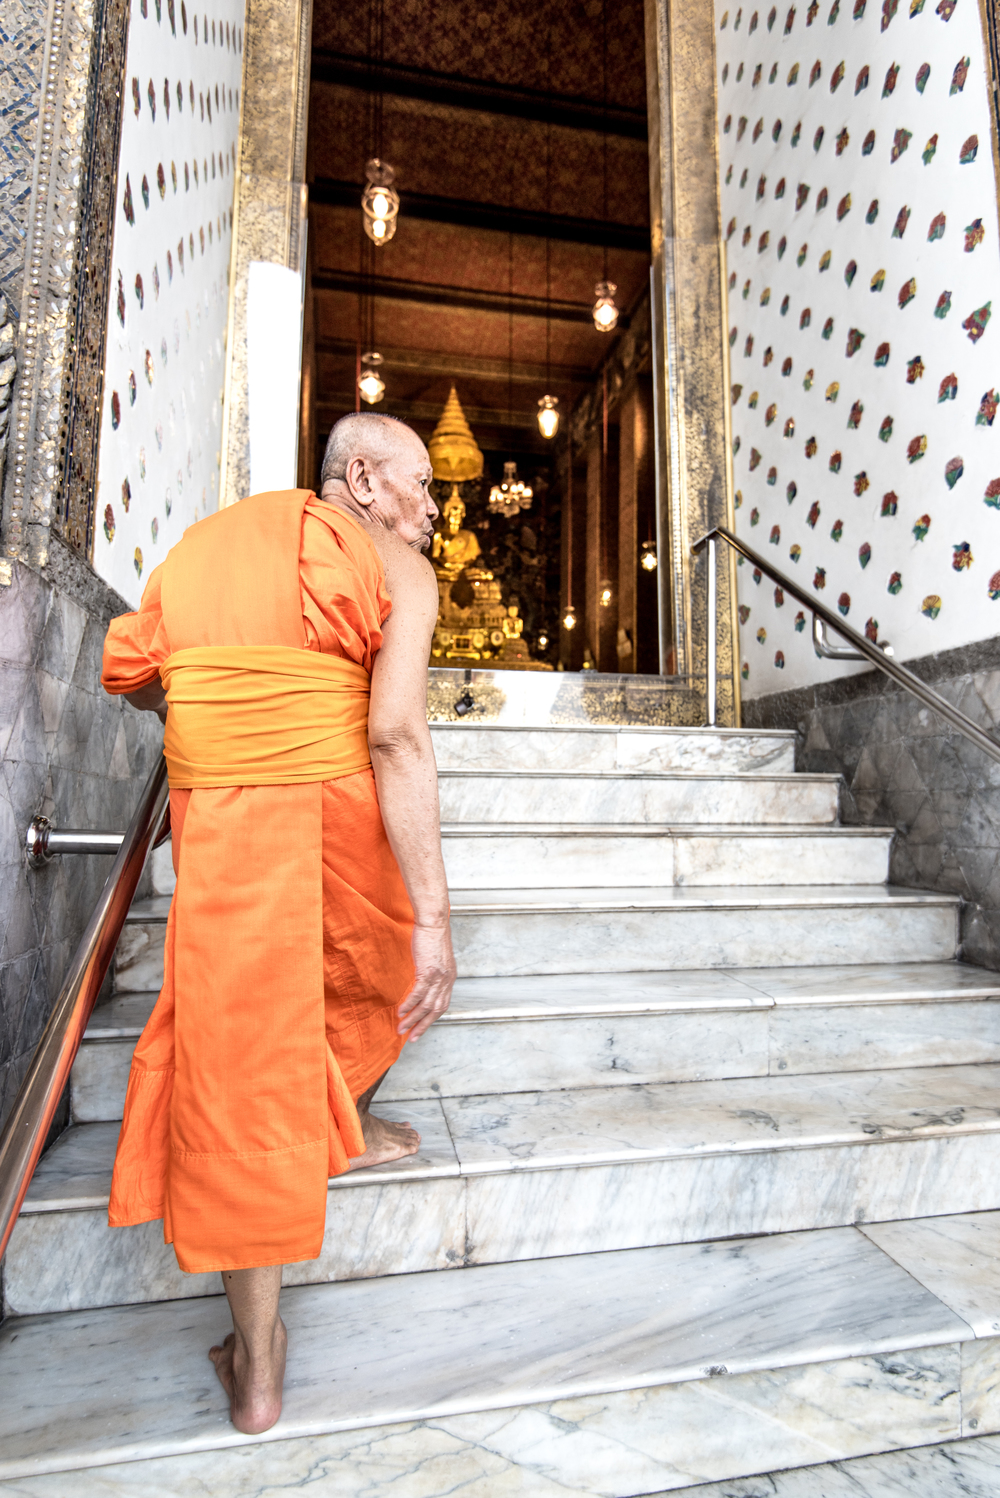 Monk at Wat Po.jpg